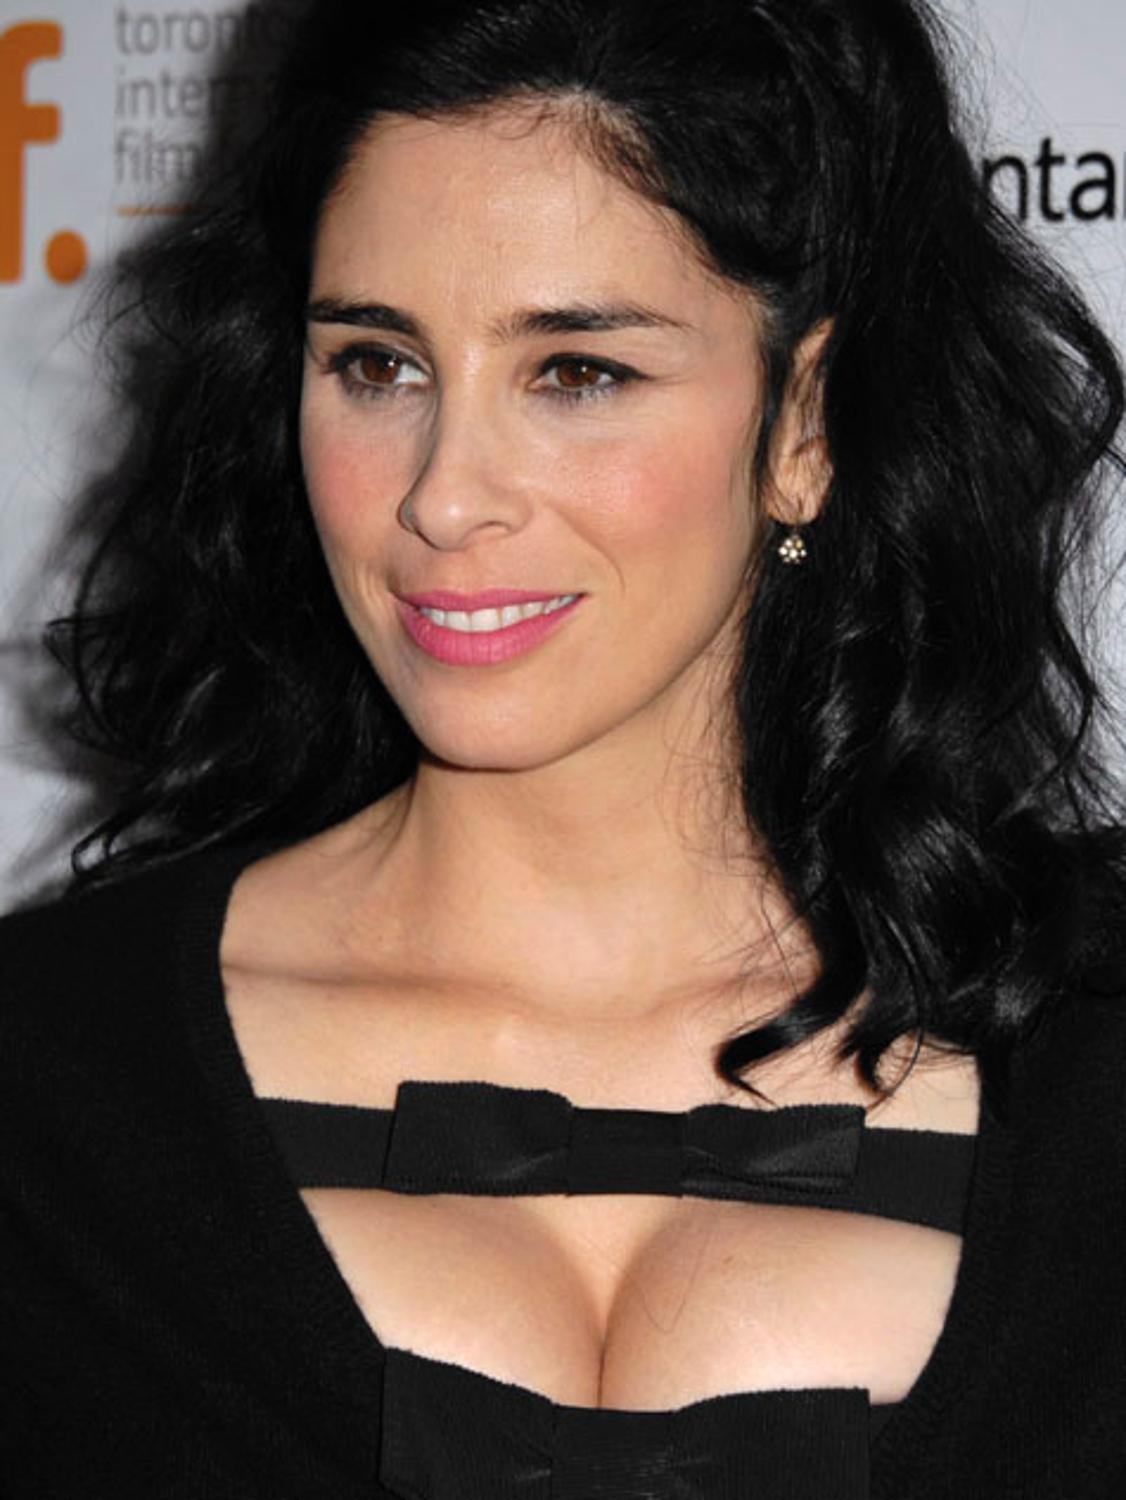 sarah-silverman-fat-nacked-images-of-malika-arora